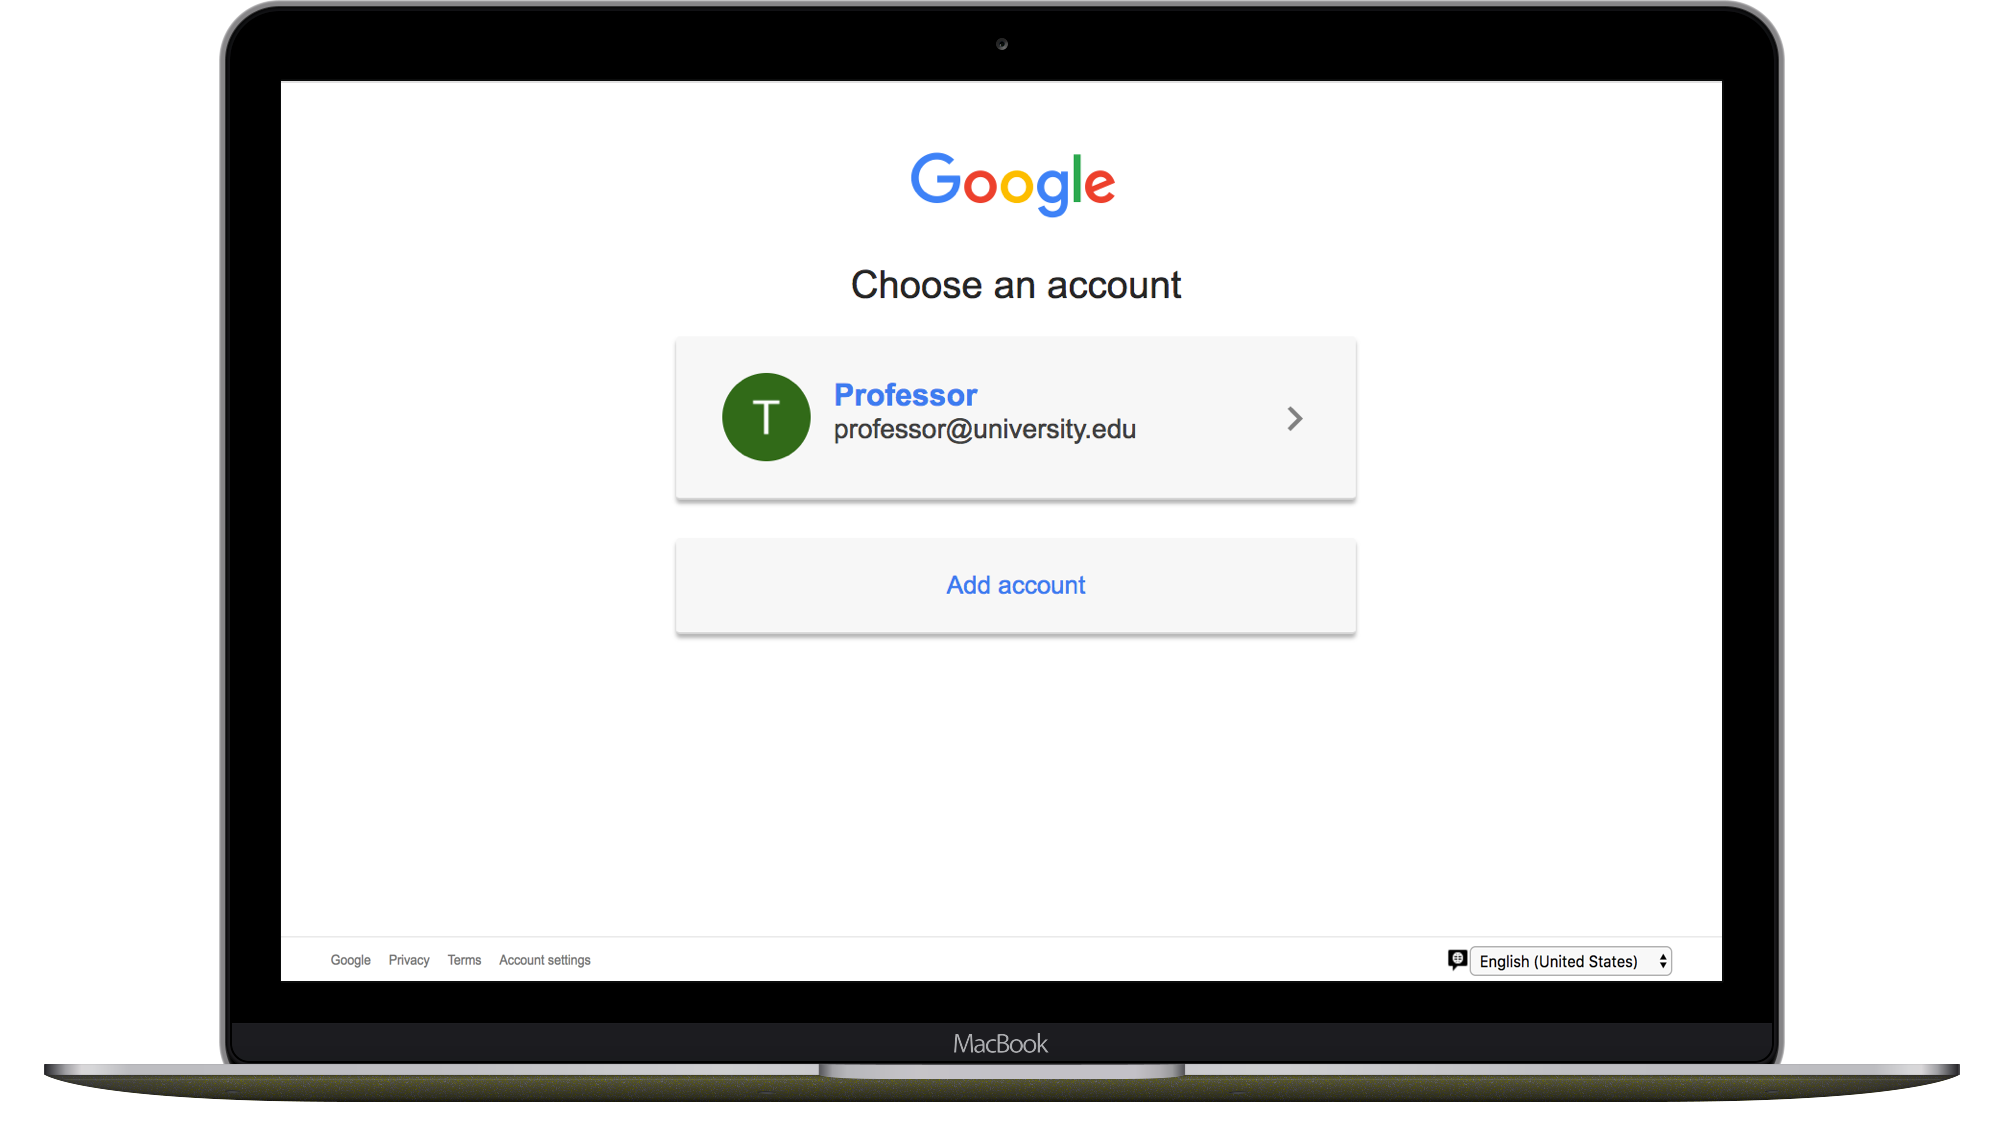 Login with your Gmail Account